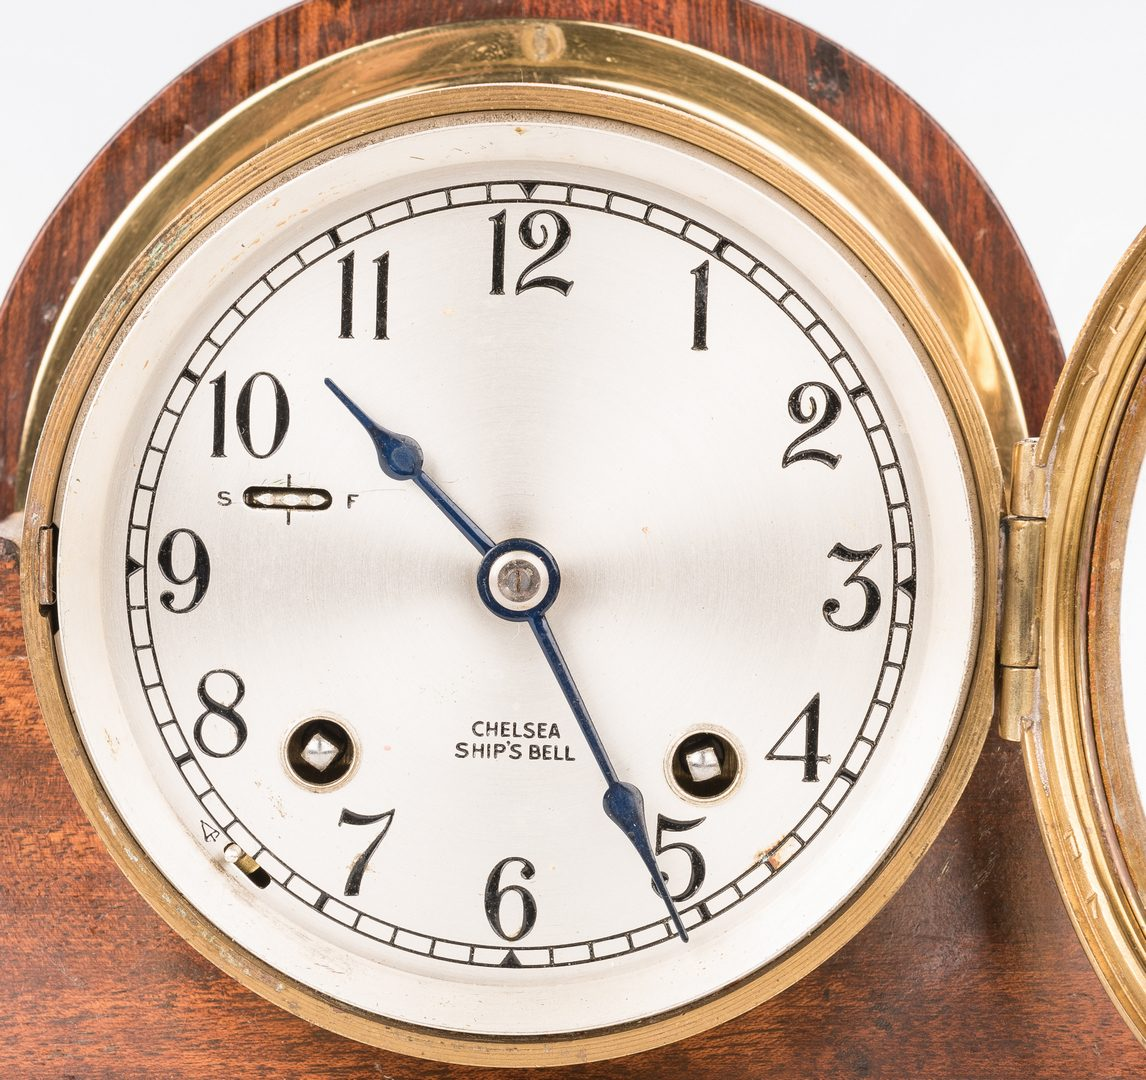 Lot 778: Seth Thomas Chronometer and Chelsea Ship Bell Clock, 2 items